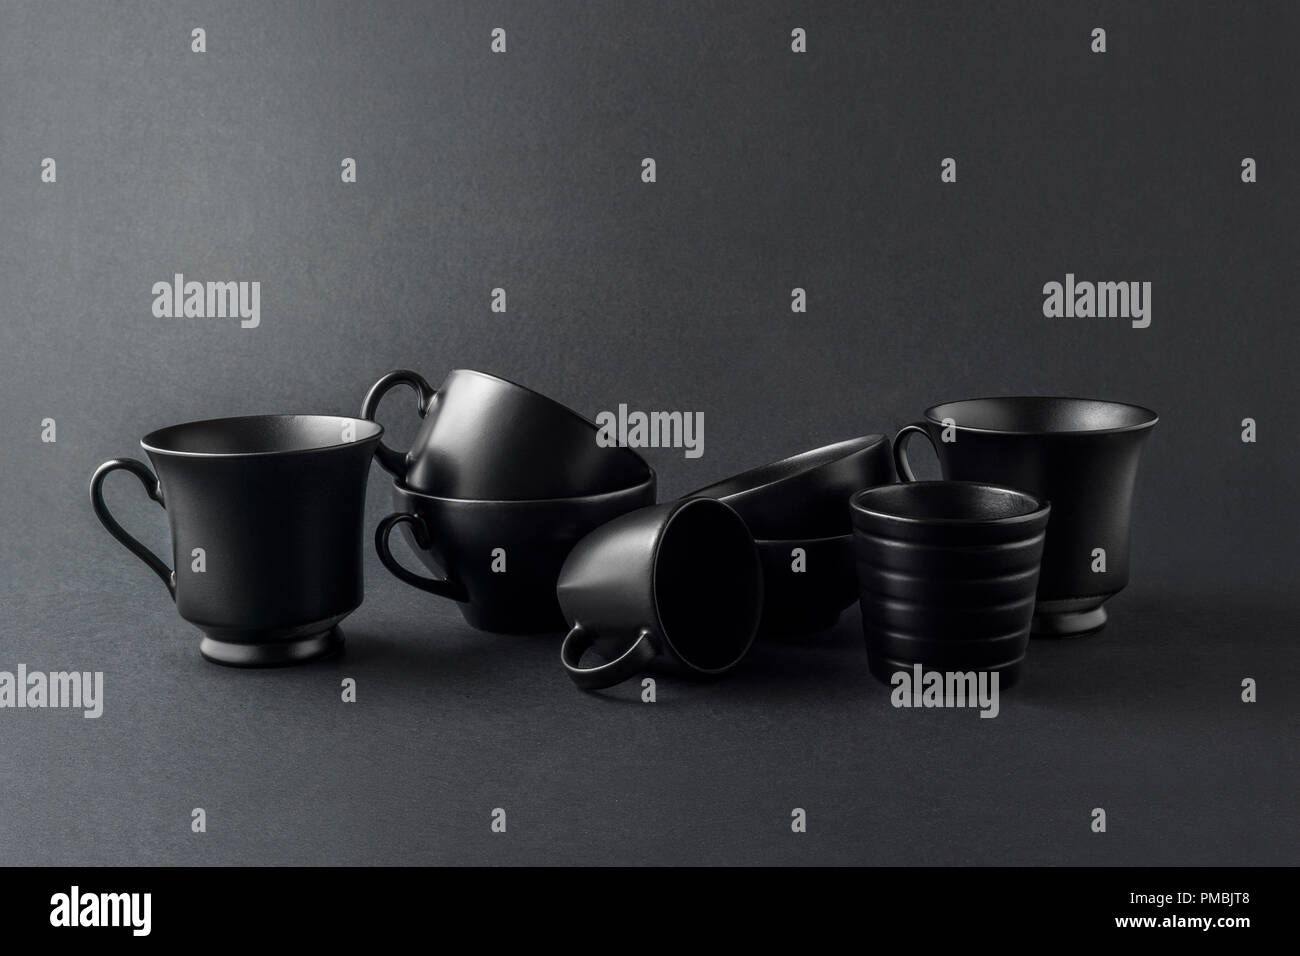 Creative Concept Photo Of Kitchenware Painted Cups And Mugs On Black Background Stock Photo Alamy